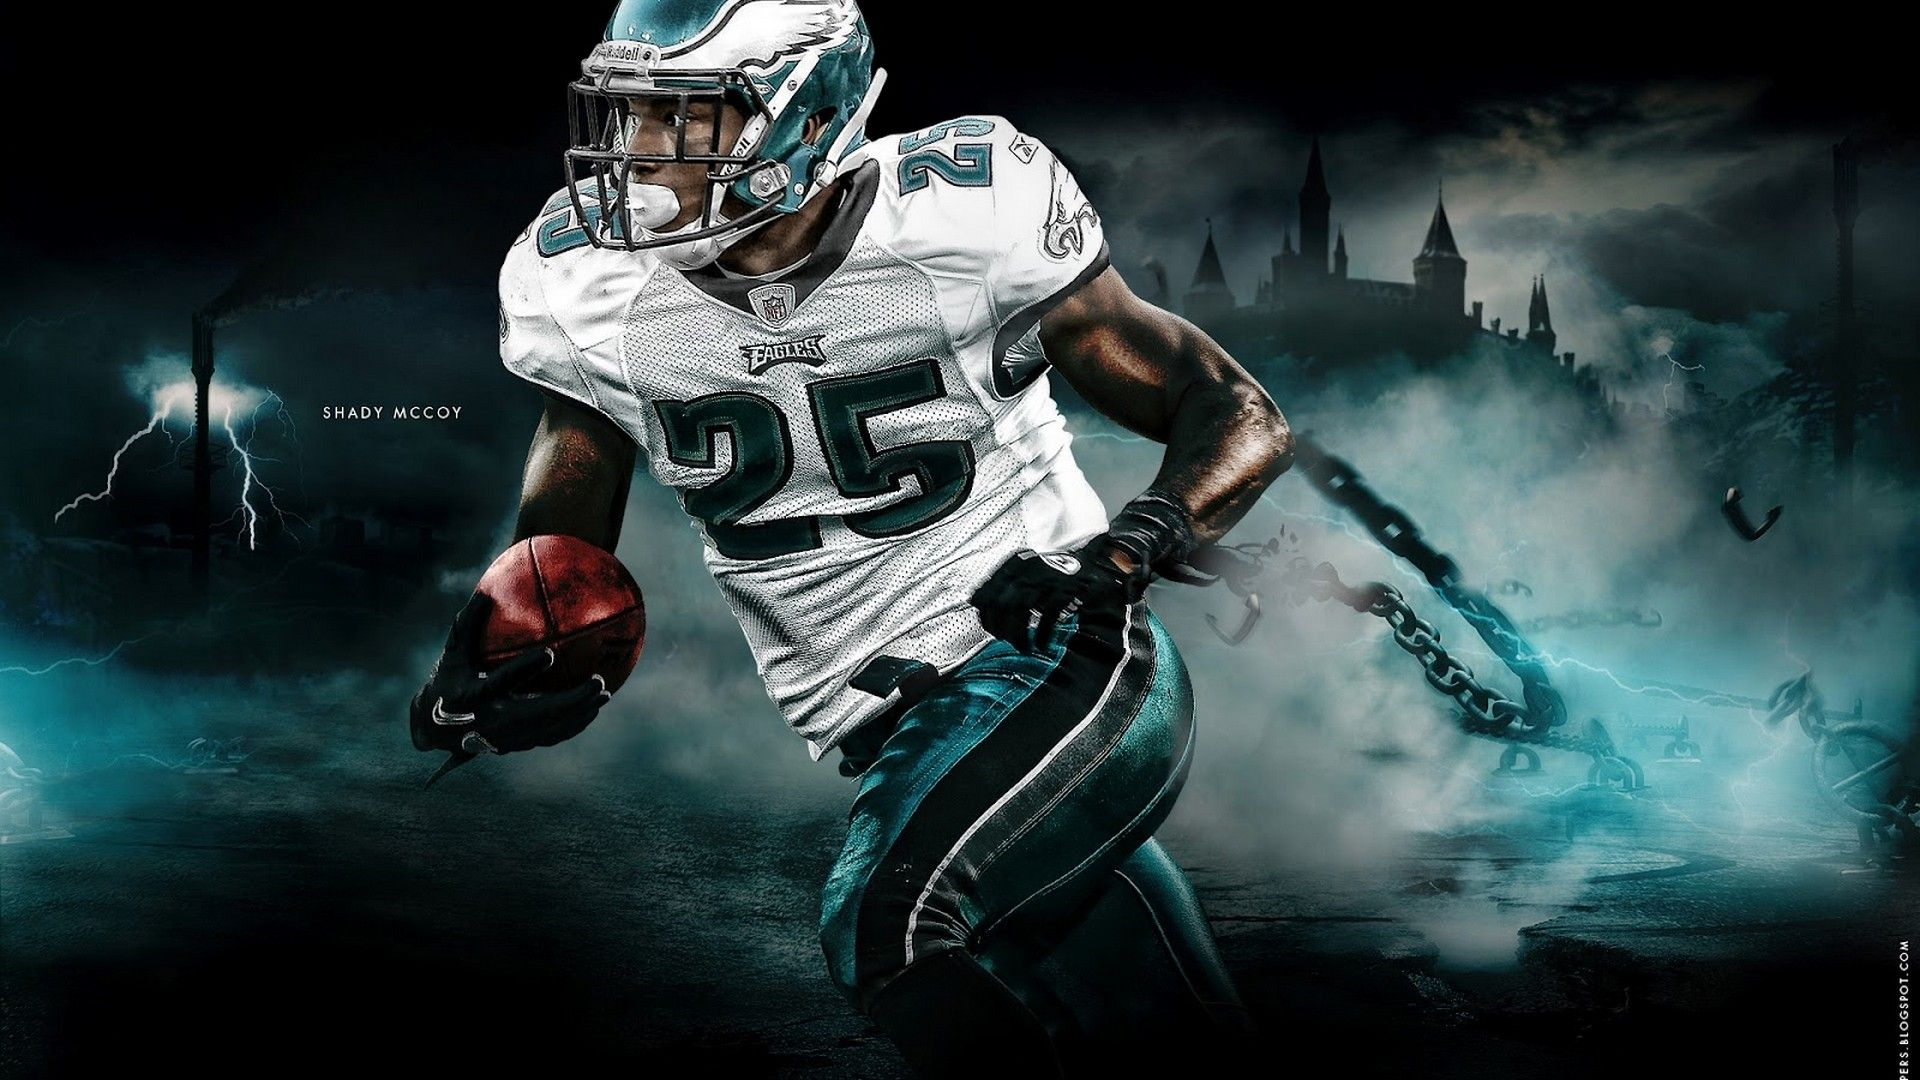 Nfl Wallpapers Nfl Football Wallpaper Football Wallpaper Philadelphia Eagles Wallpaper